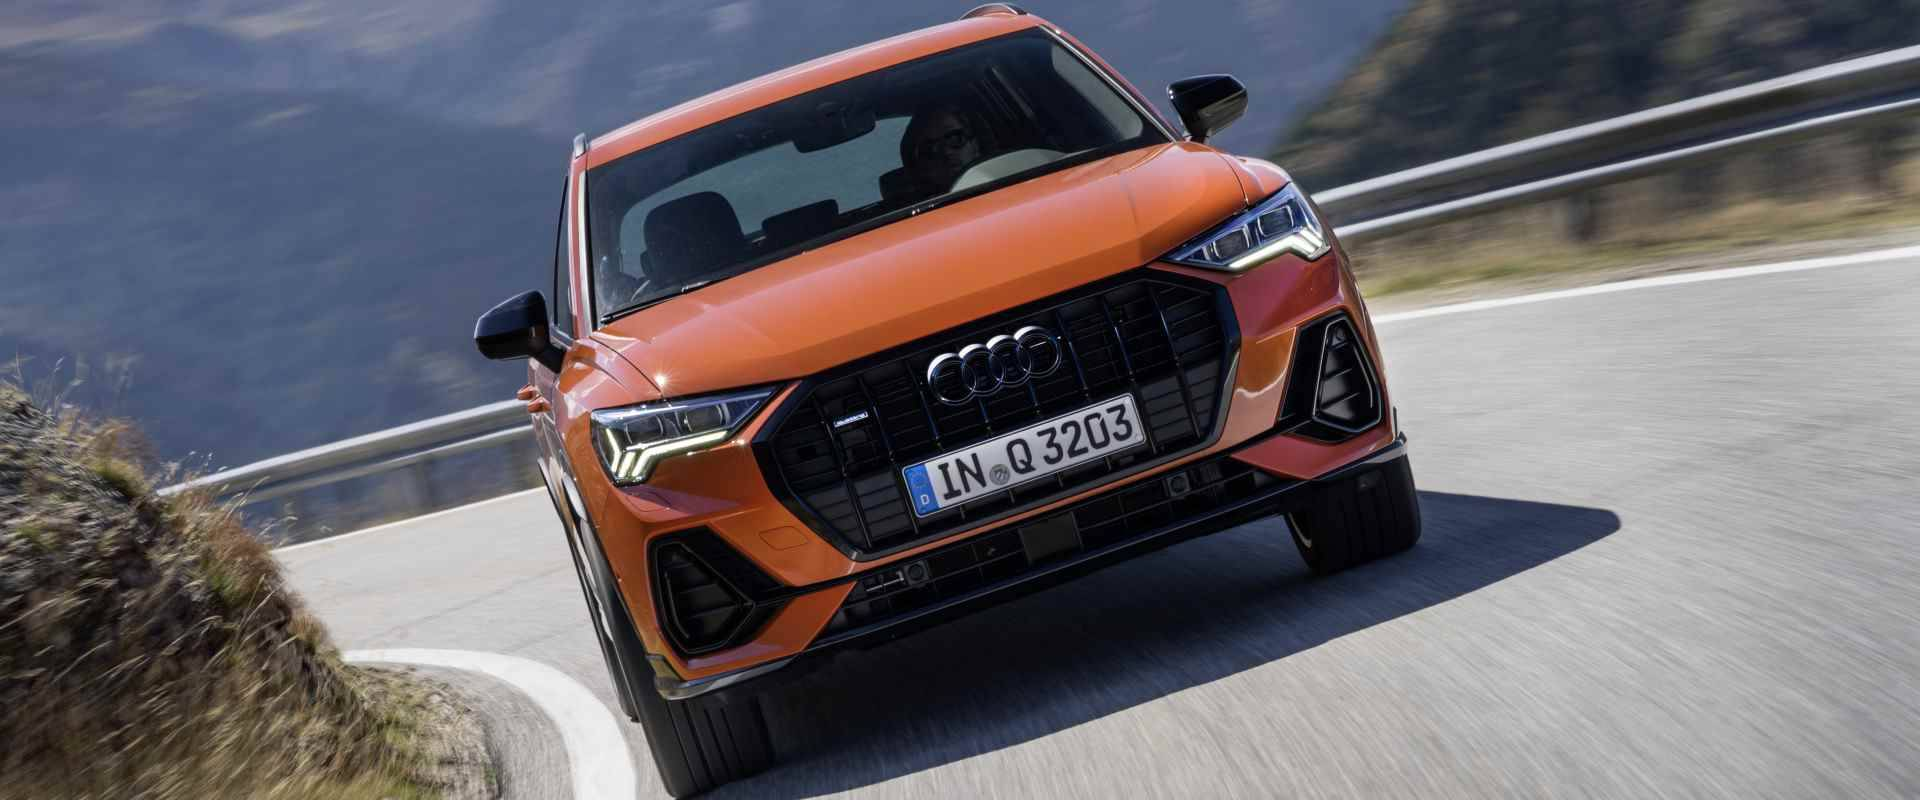 Audi Q3 2019 - Audi Paris header art